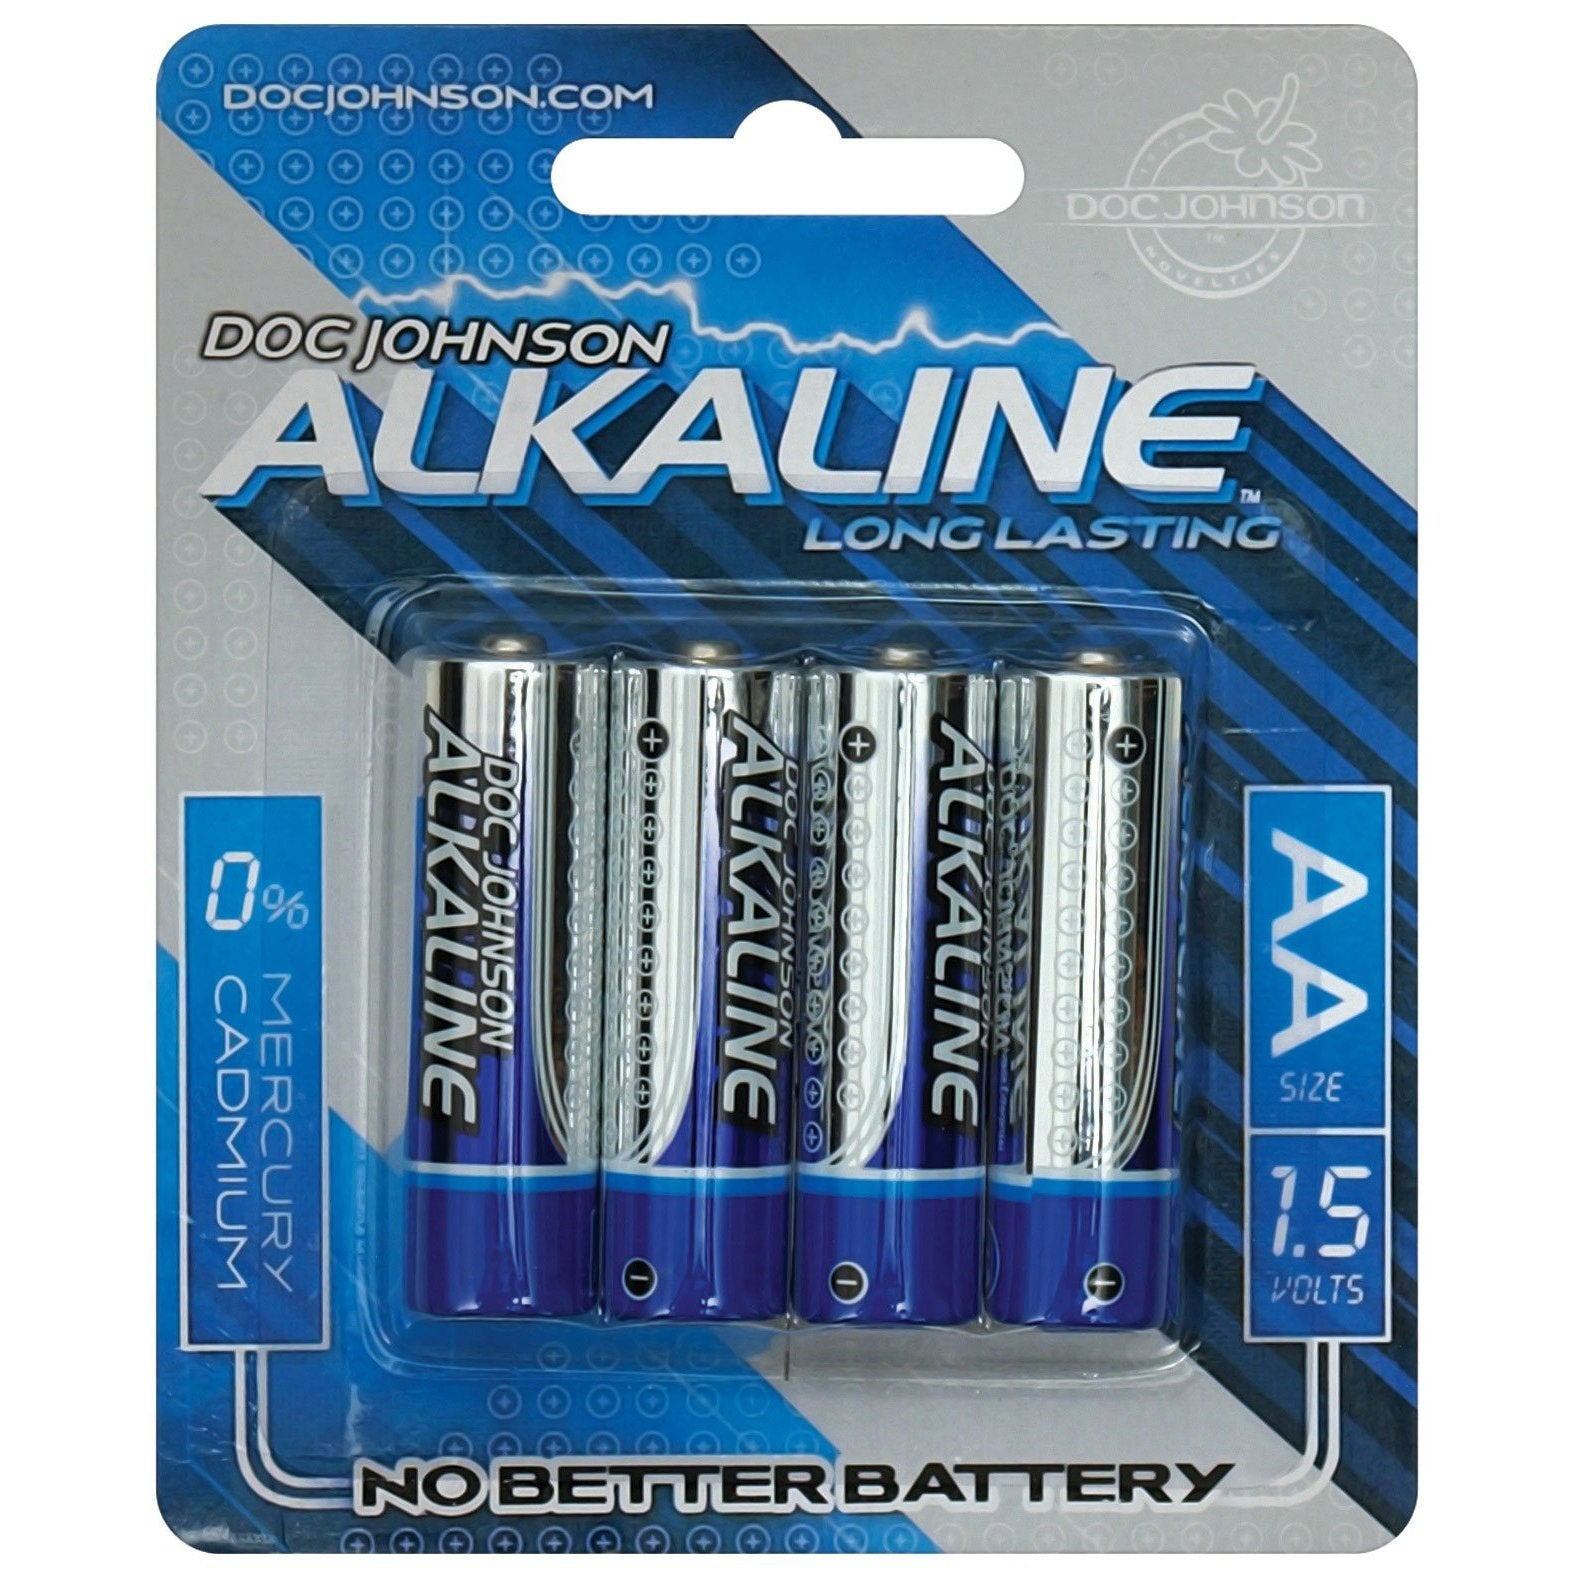 Doc Johnson Alkaline Batteries AA - 4 Pack - Gay Men's Sex Toys - Adam's Toy Box